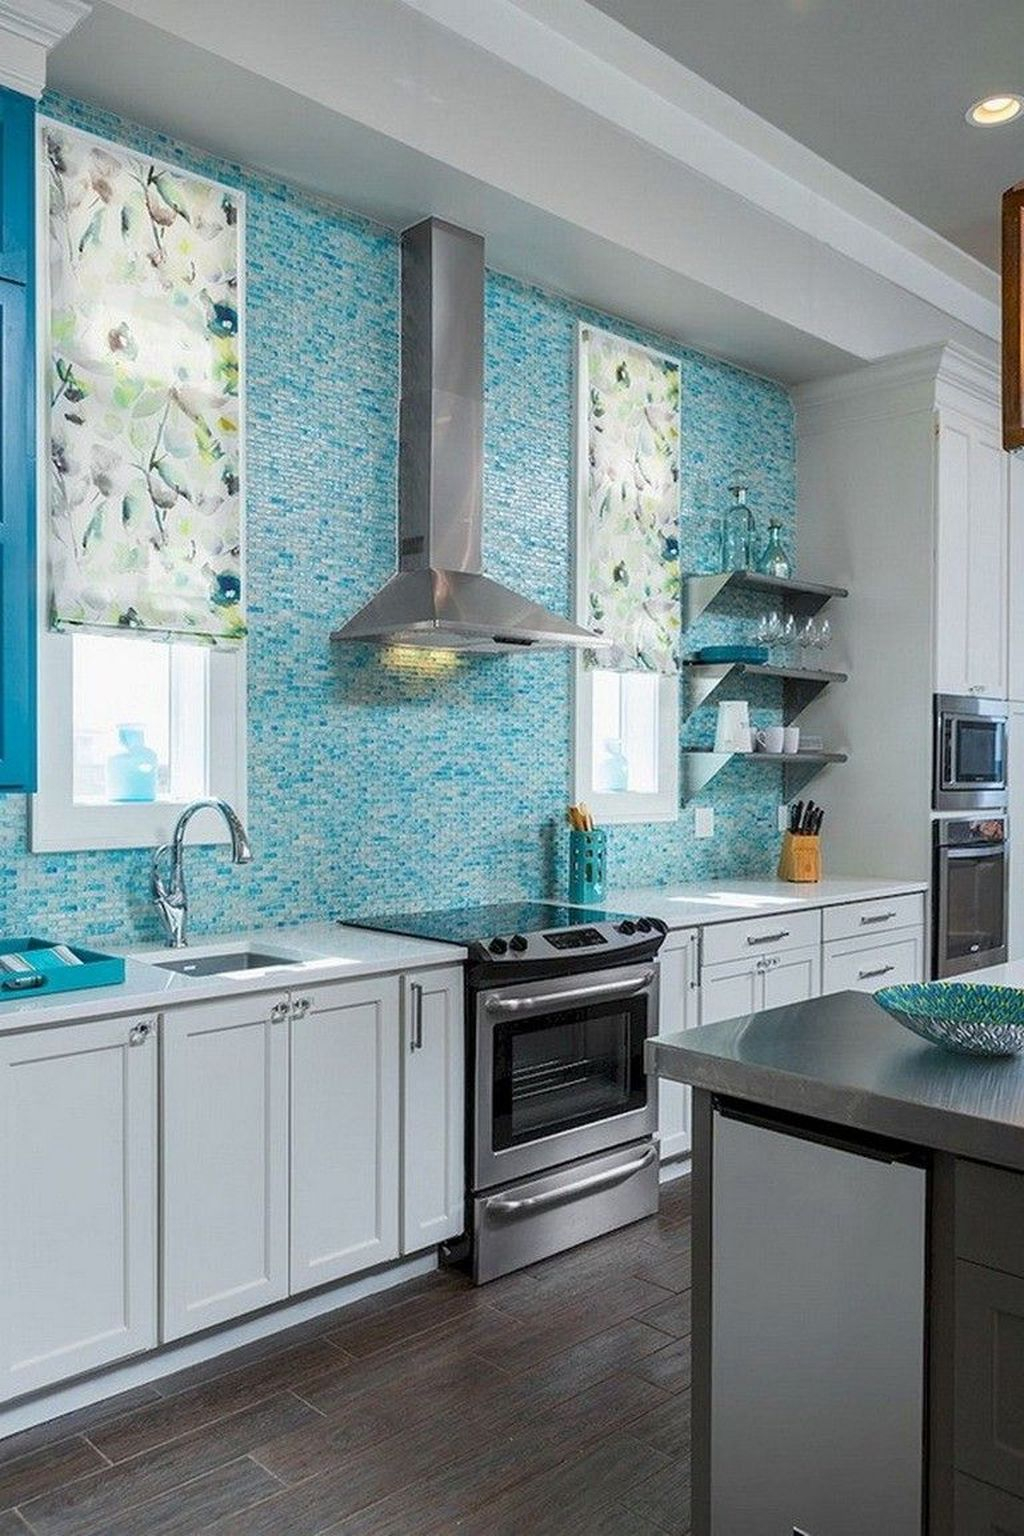 33 Awesome Backsplash Kitchen Wall Ideas That Every People Want It